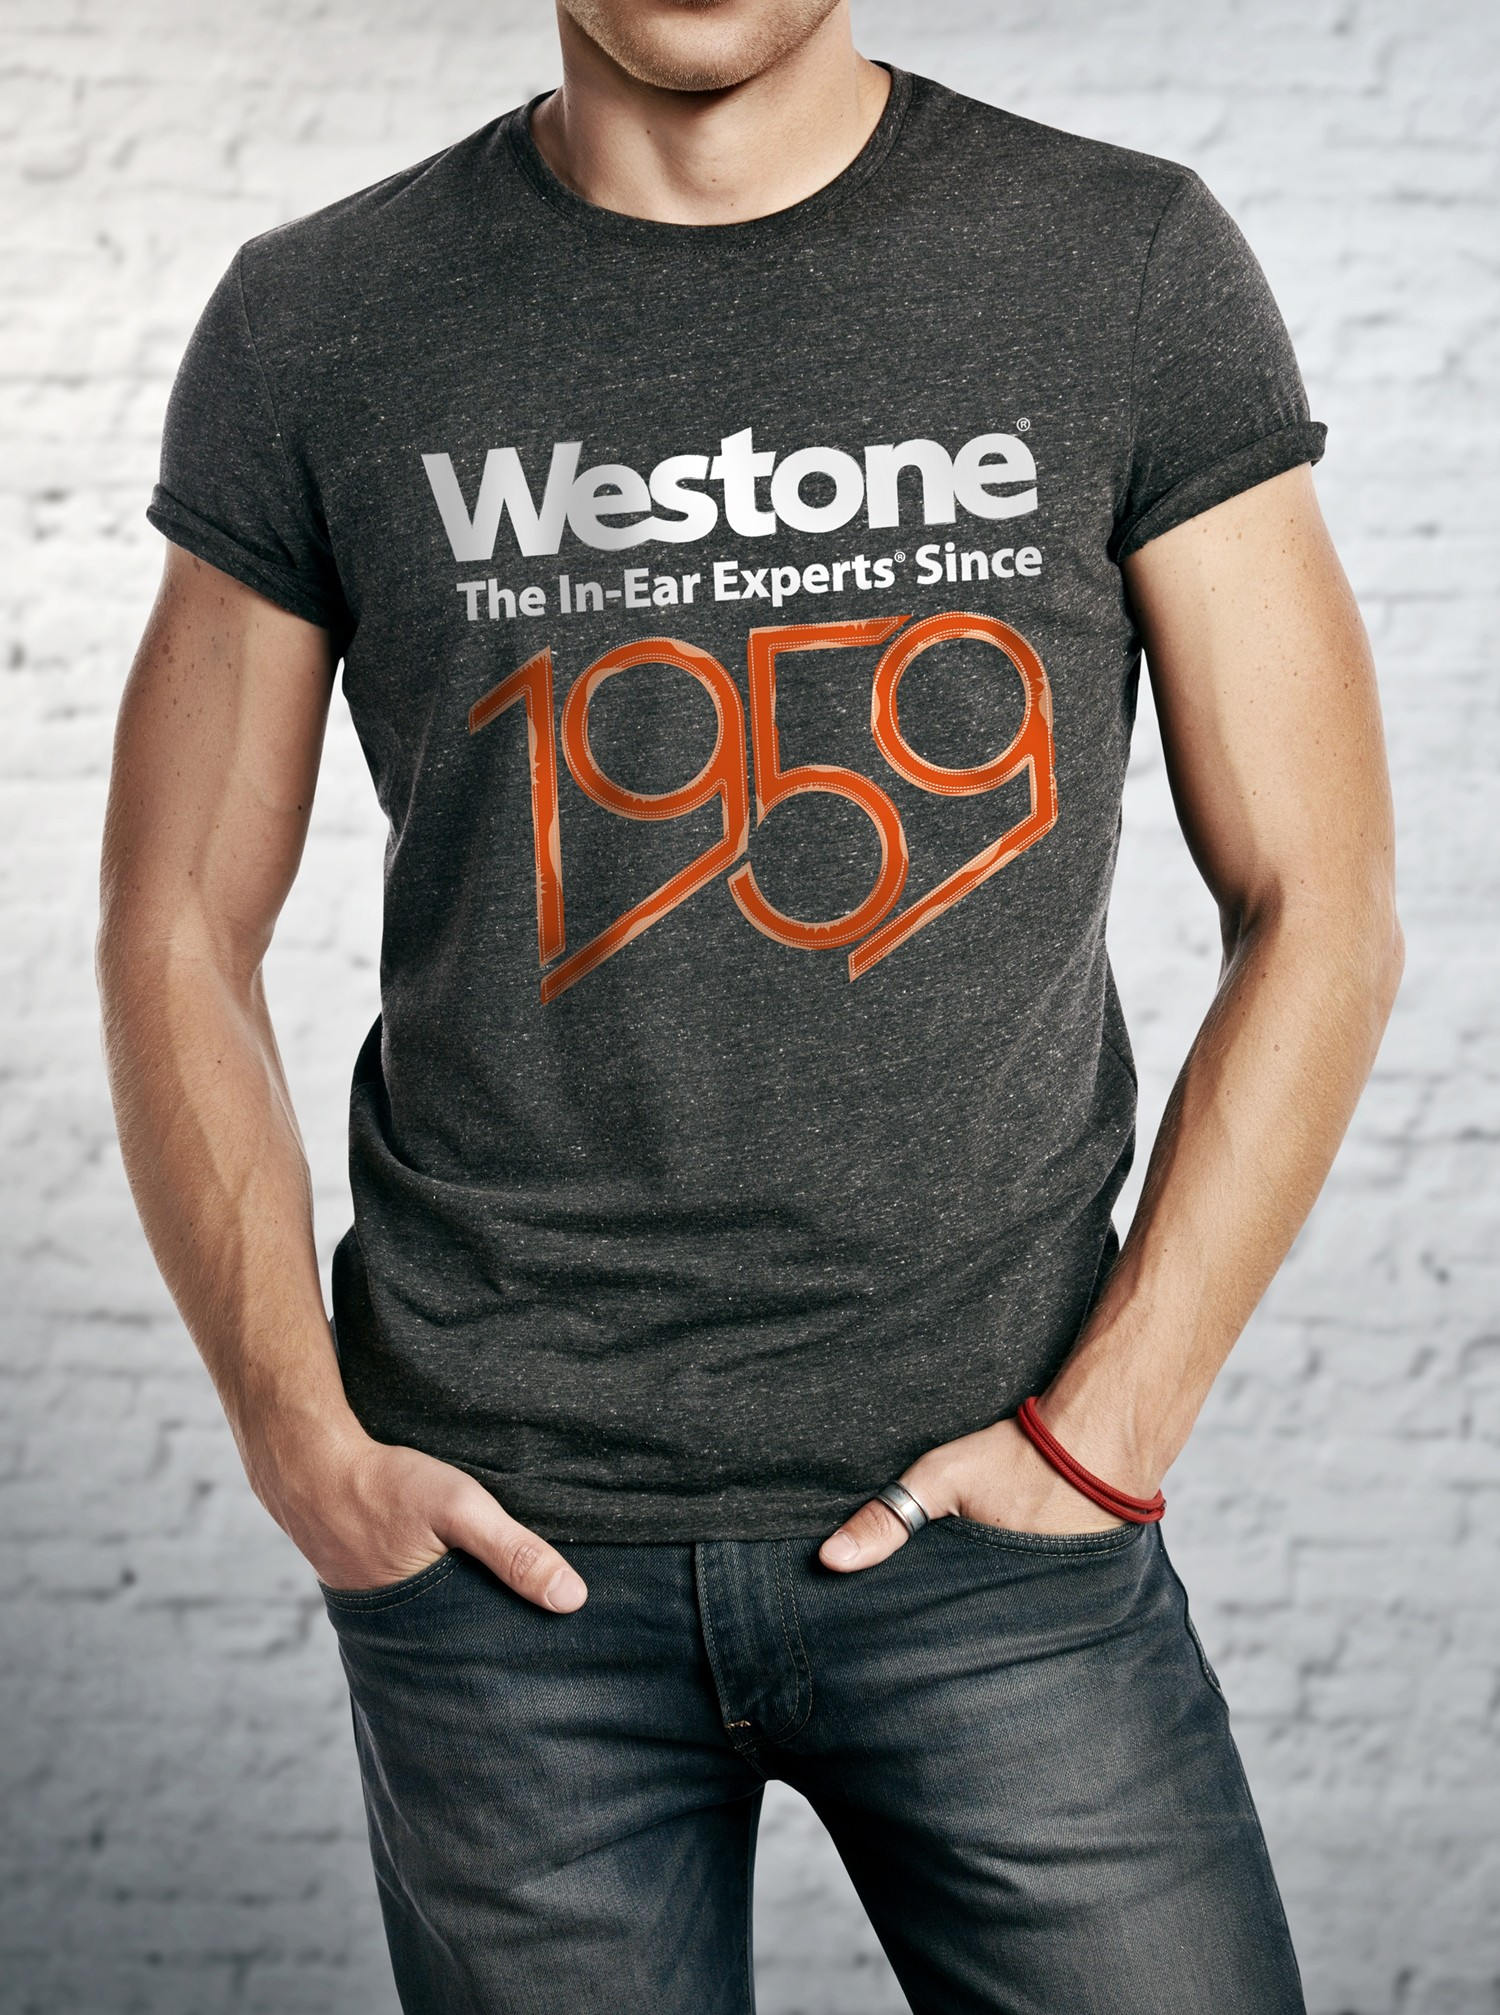 Westone Since 1959 T-Shirt Mens, 2XL, Charcoal